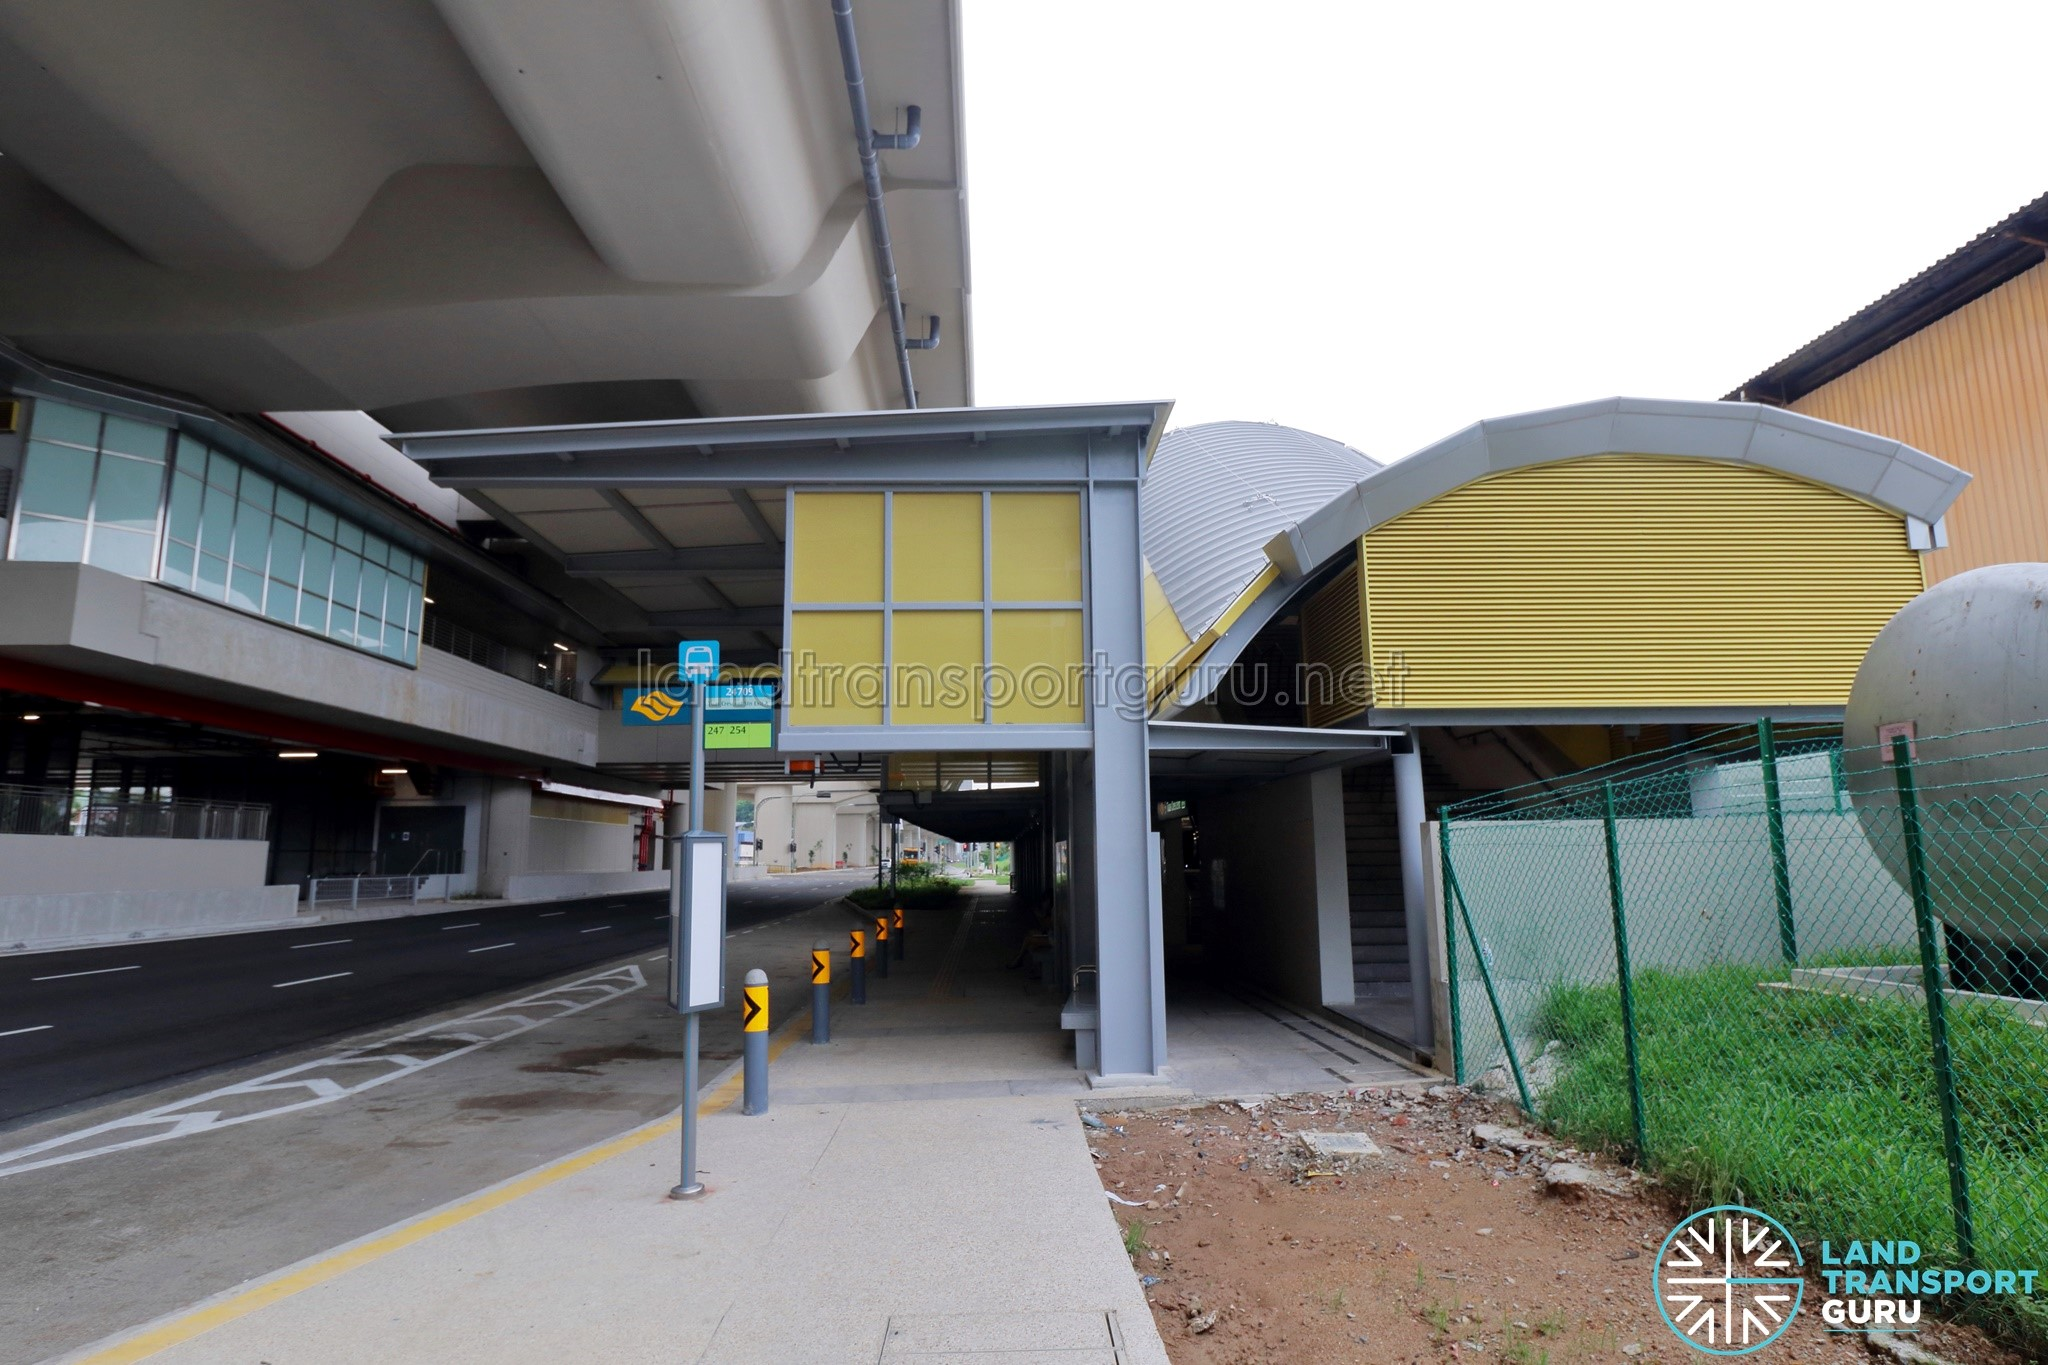 Tuas Crescent Station